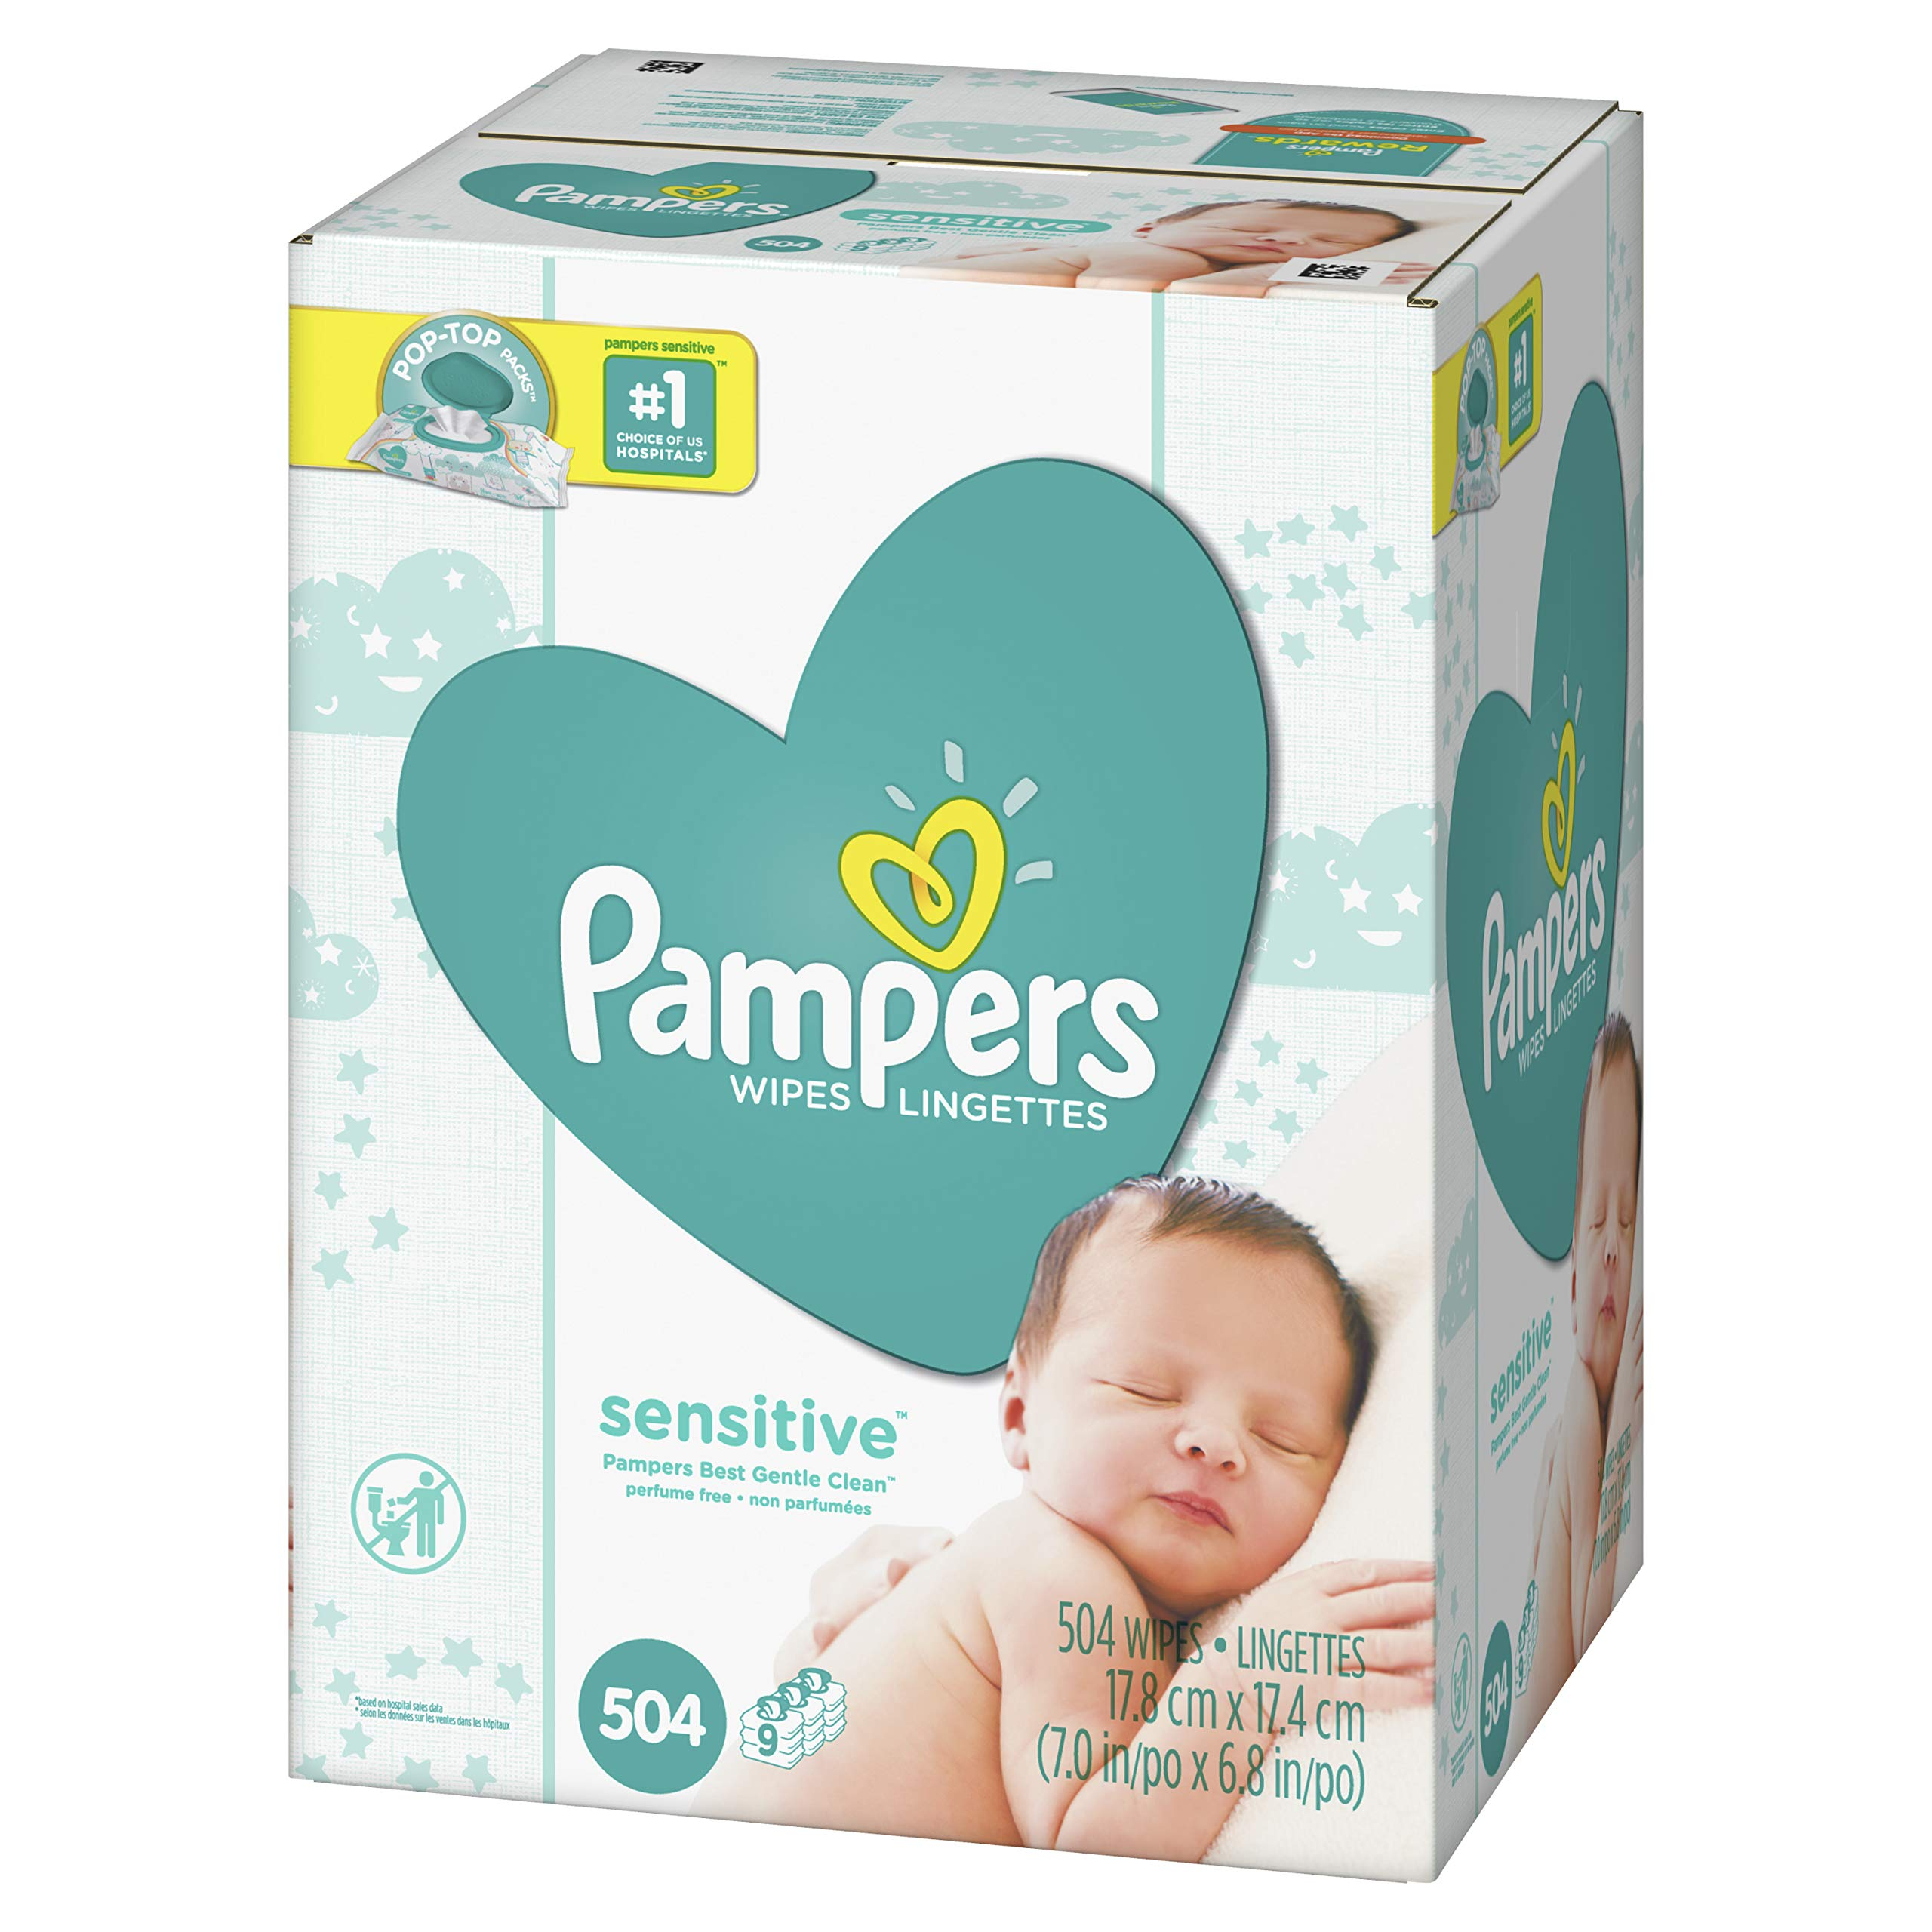 Pampers Sensitive Water-Based Baby Diaper Wipes